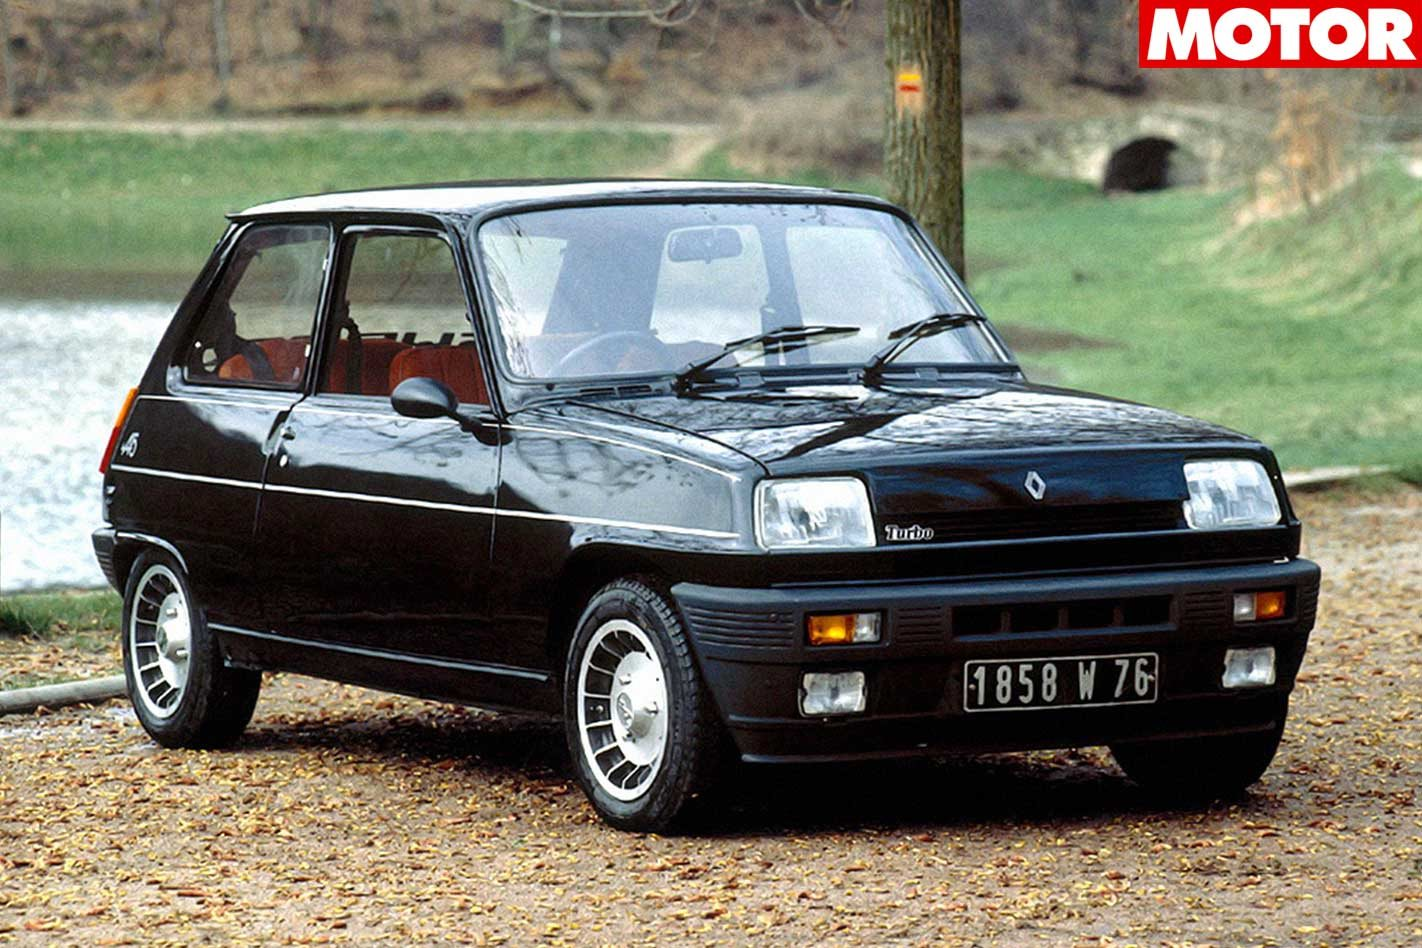 1985 1991 Renault 5 Gt Turbo Fast Car History Lesson